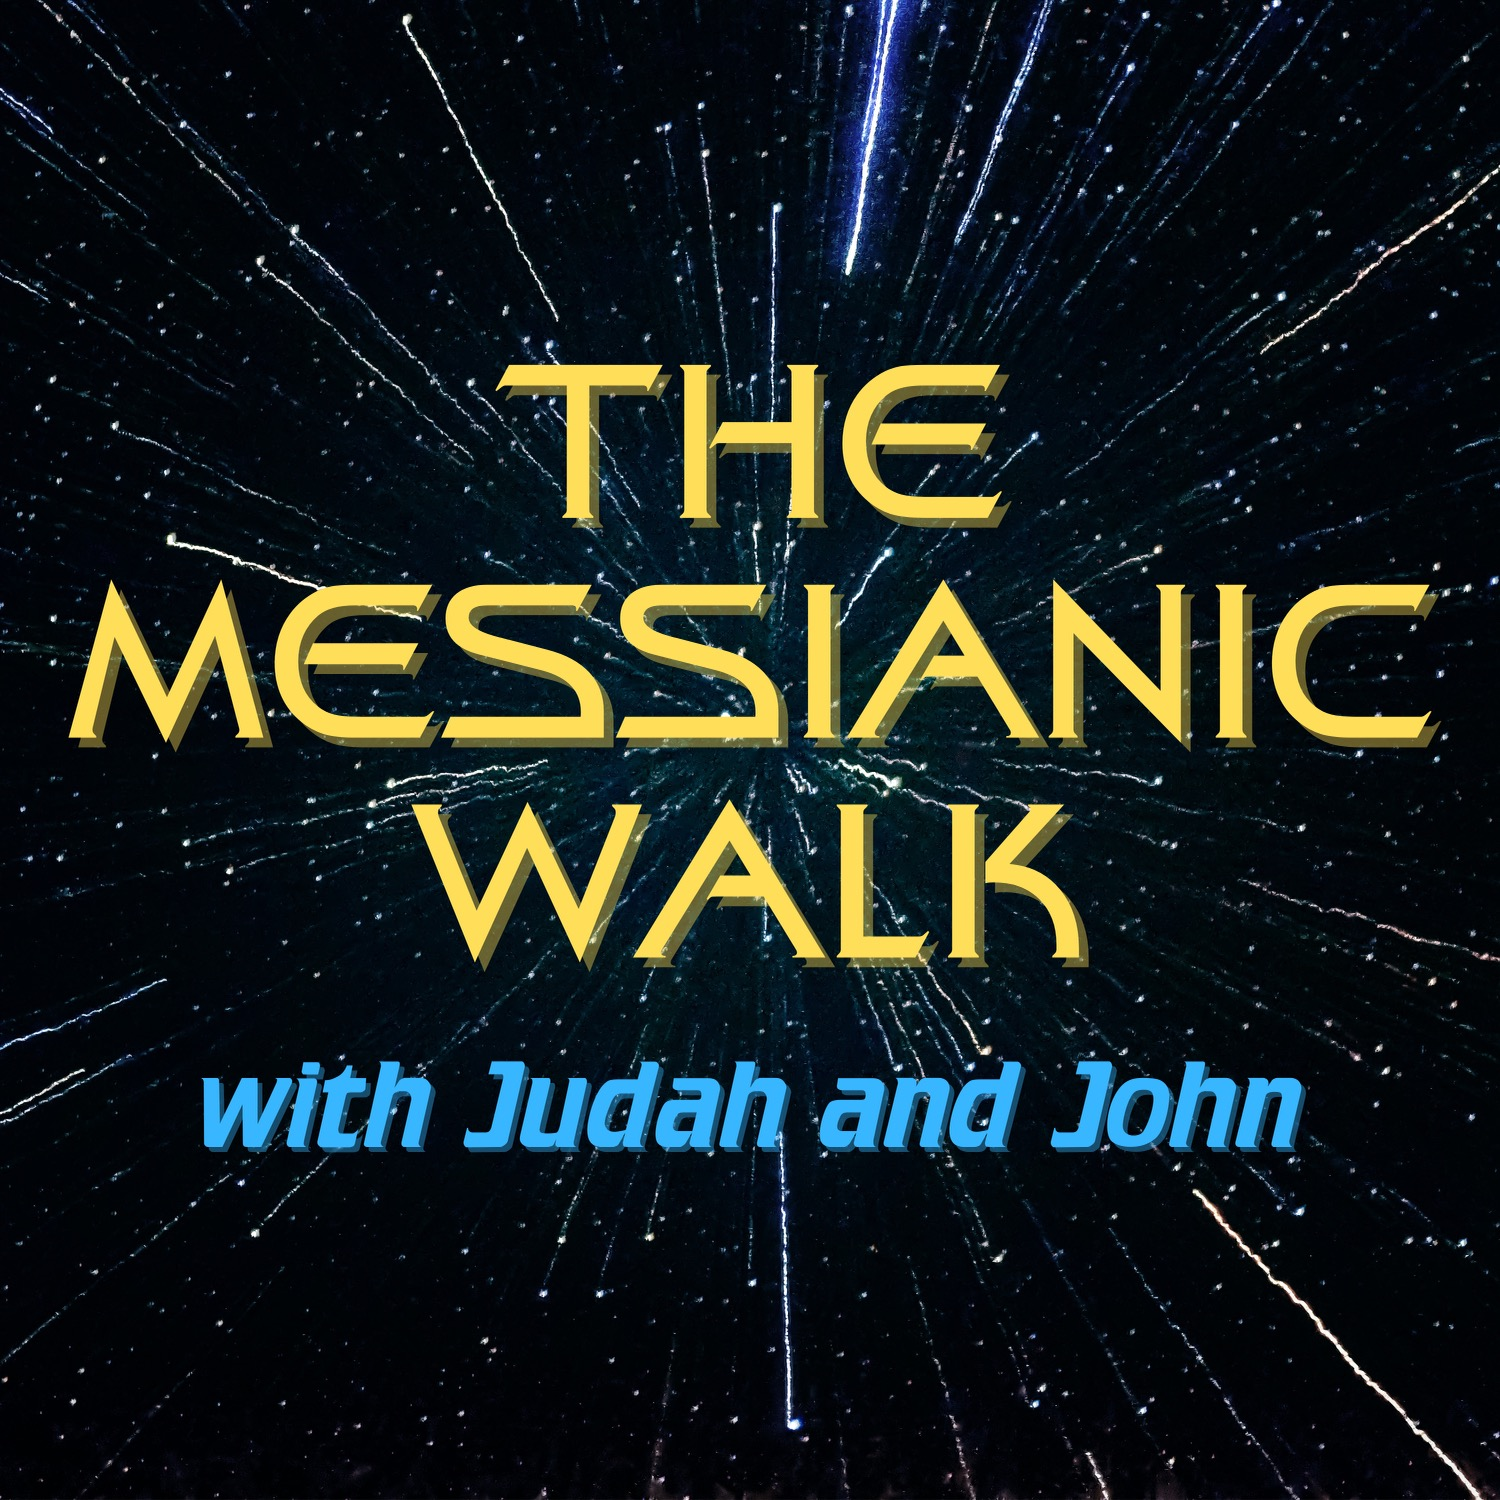 The Messianic Walk